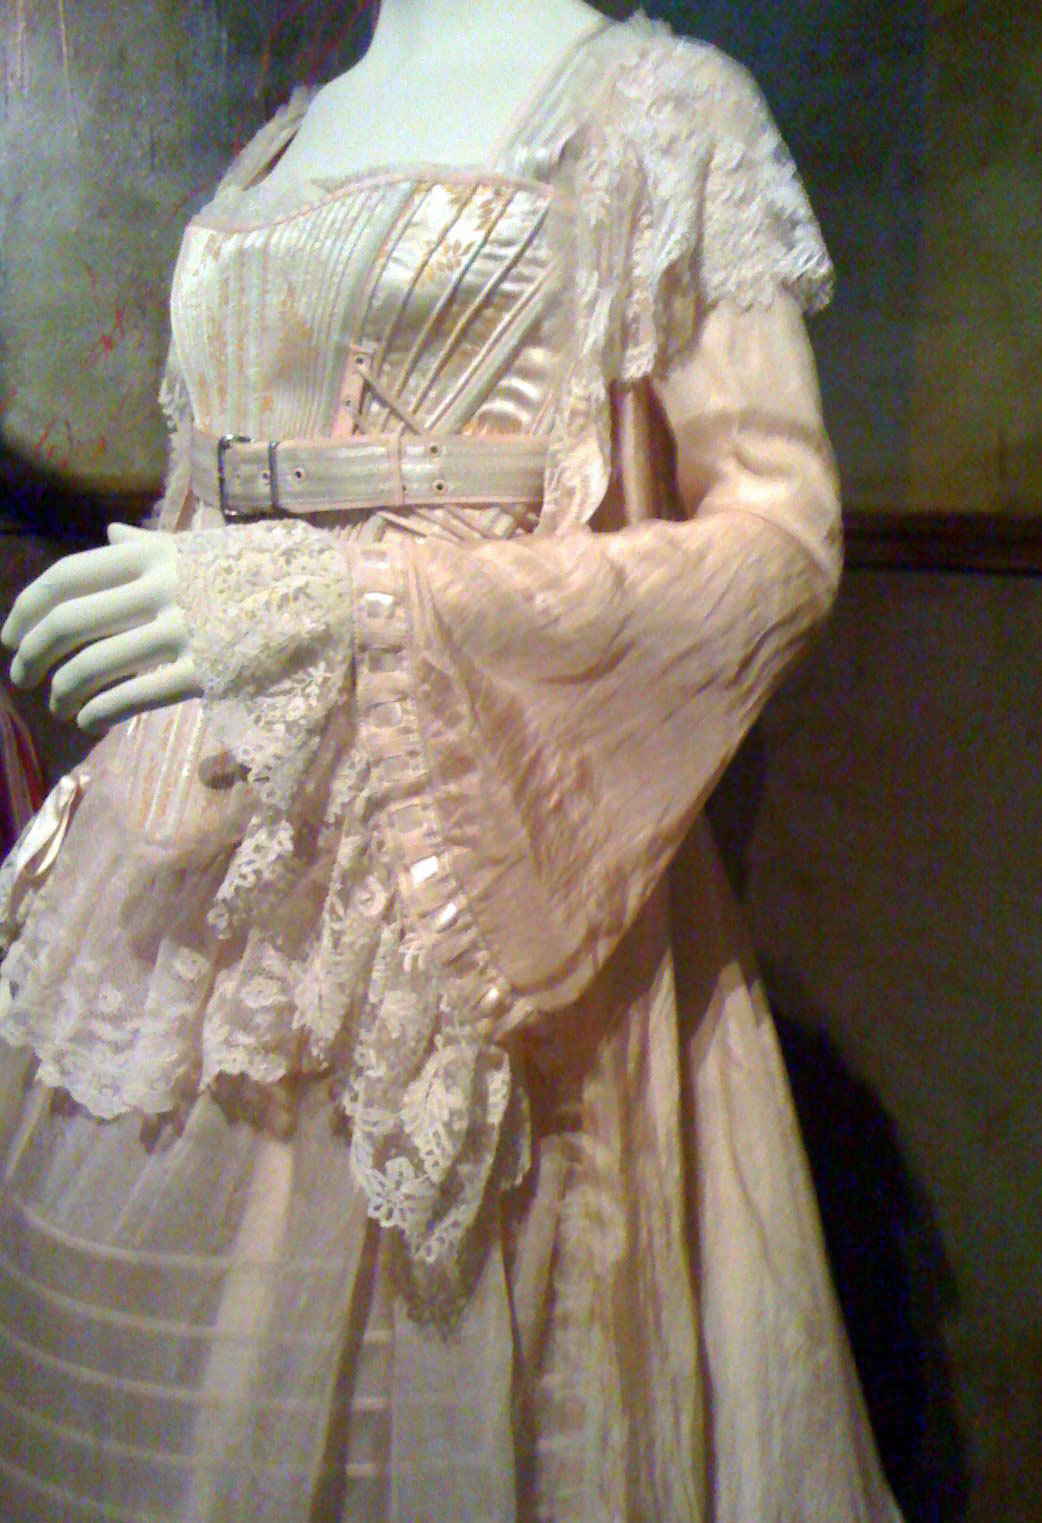 johannas pink dress sweeney todd photo 11208219 fanpop